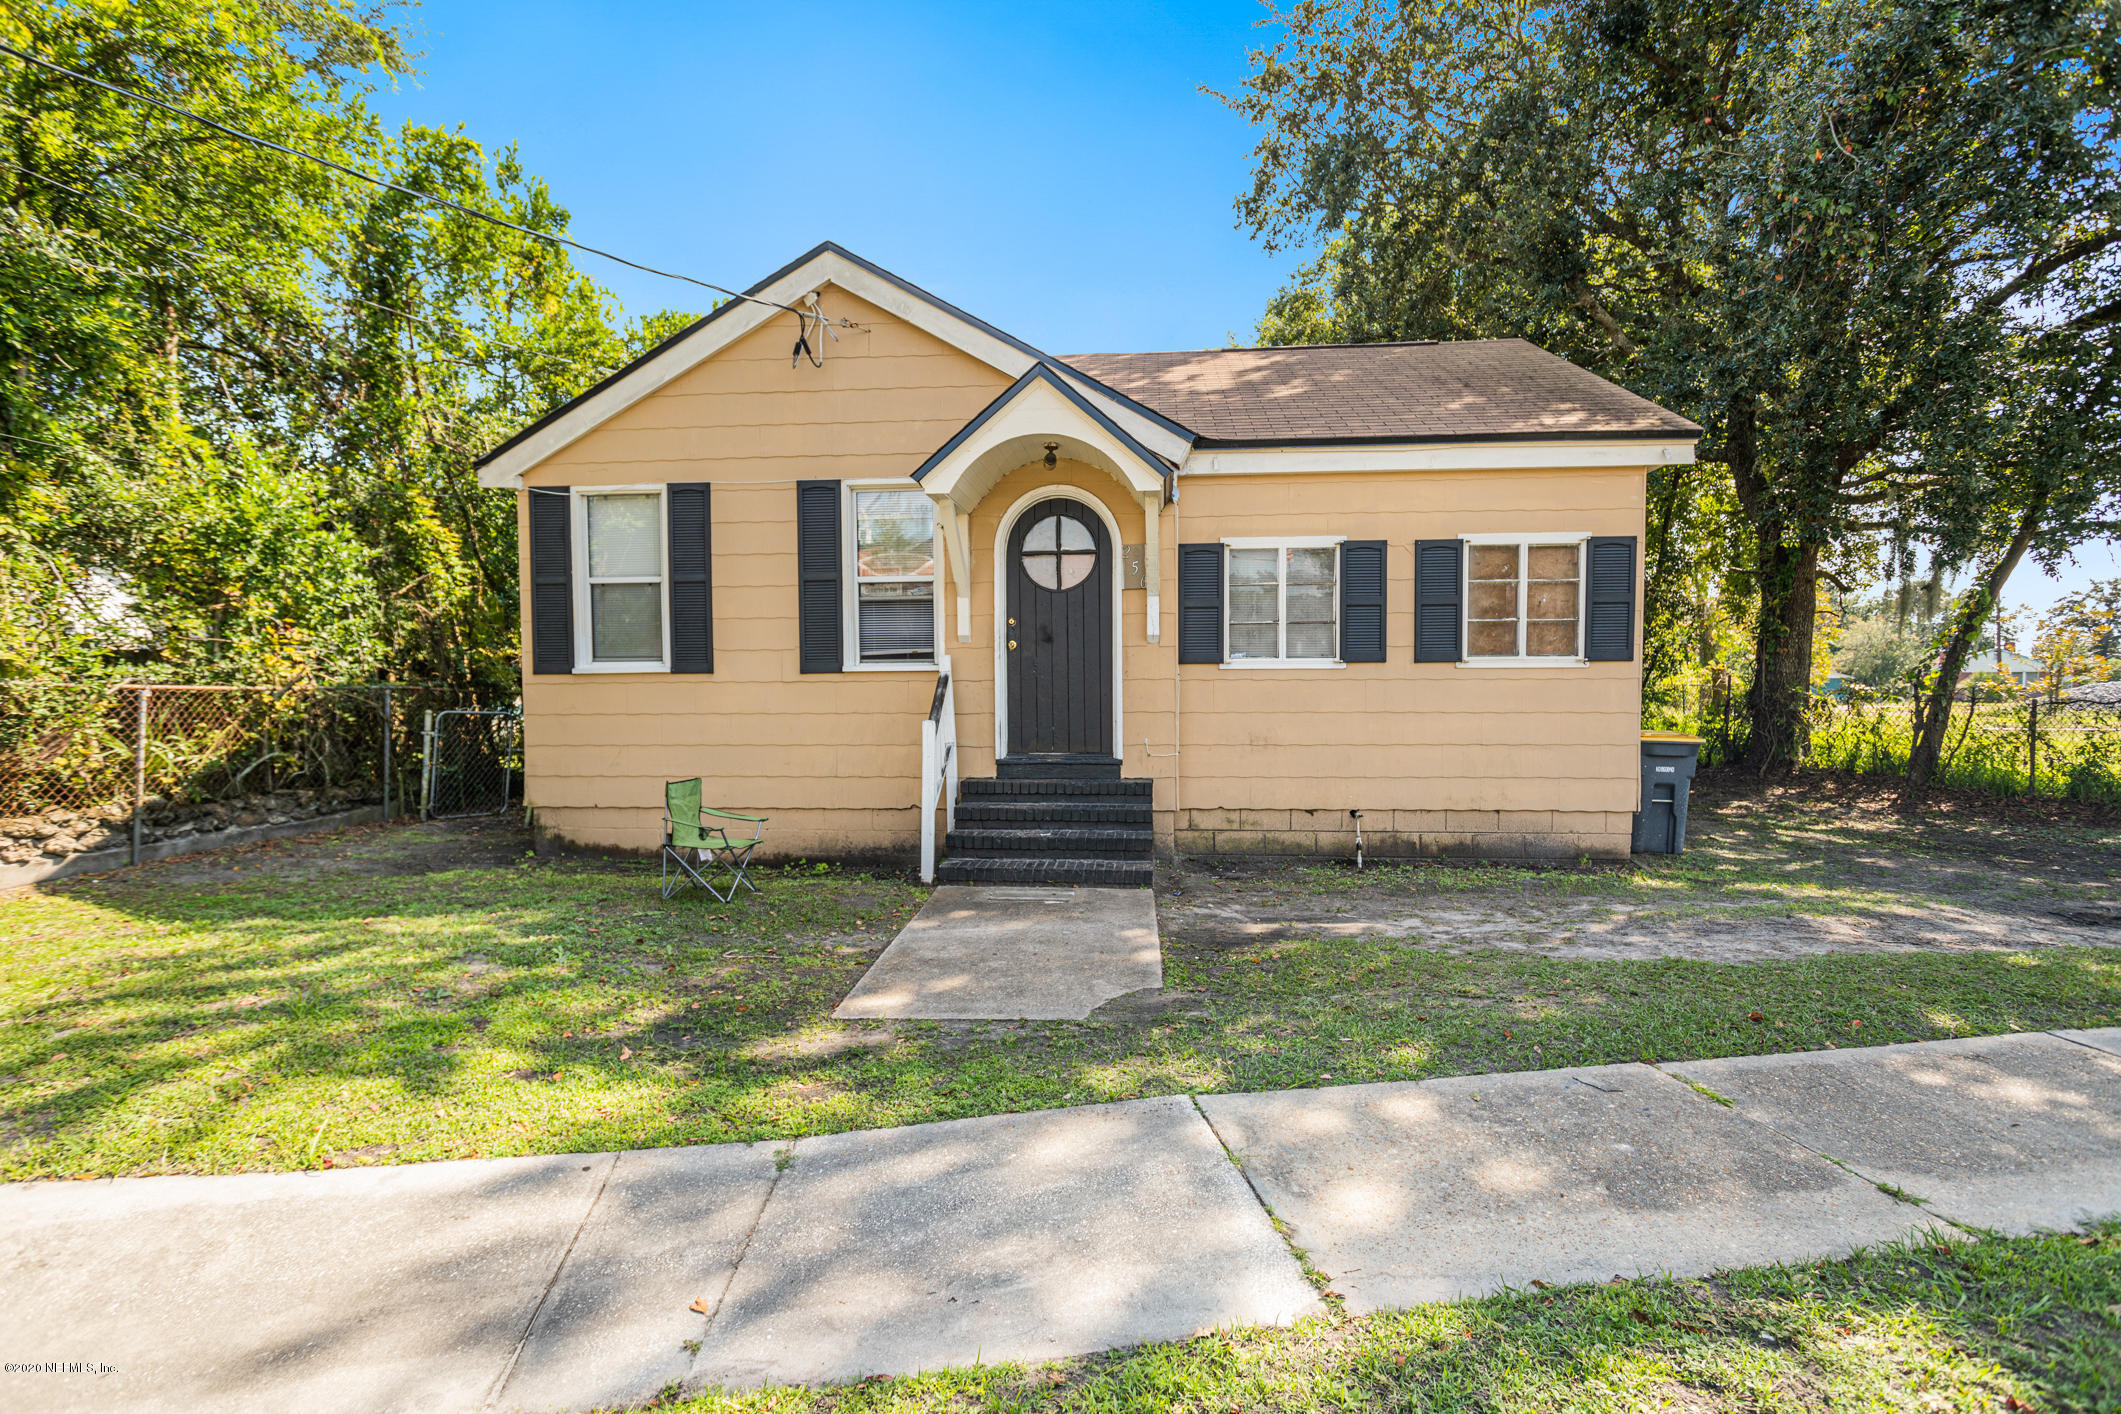 256 54TH, JACKSONVILLE, FLORIDA 32208, 3 Bedrooms Bedrooms, ,2 BathroomsBathrooms,Investment / MultiFamily,For sale,54TH,1078427